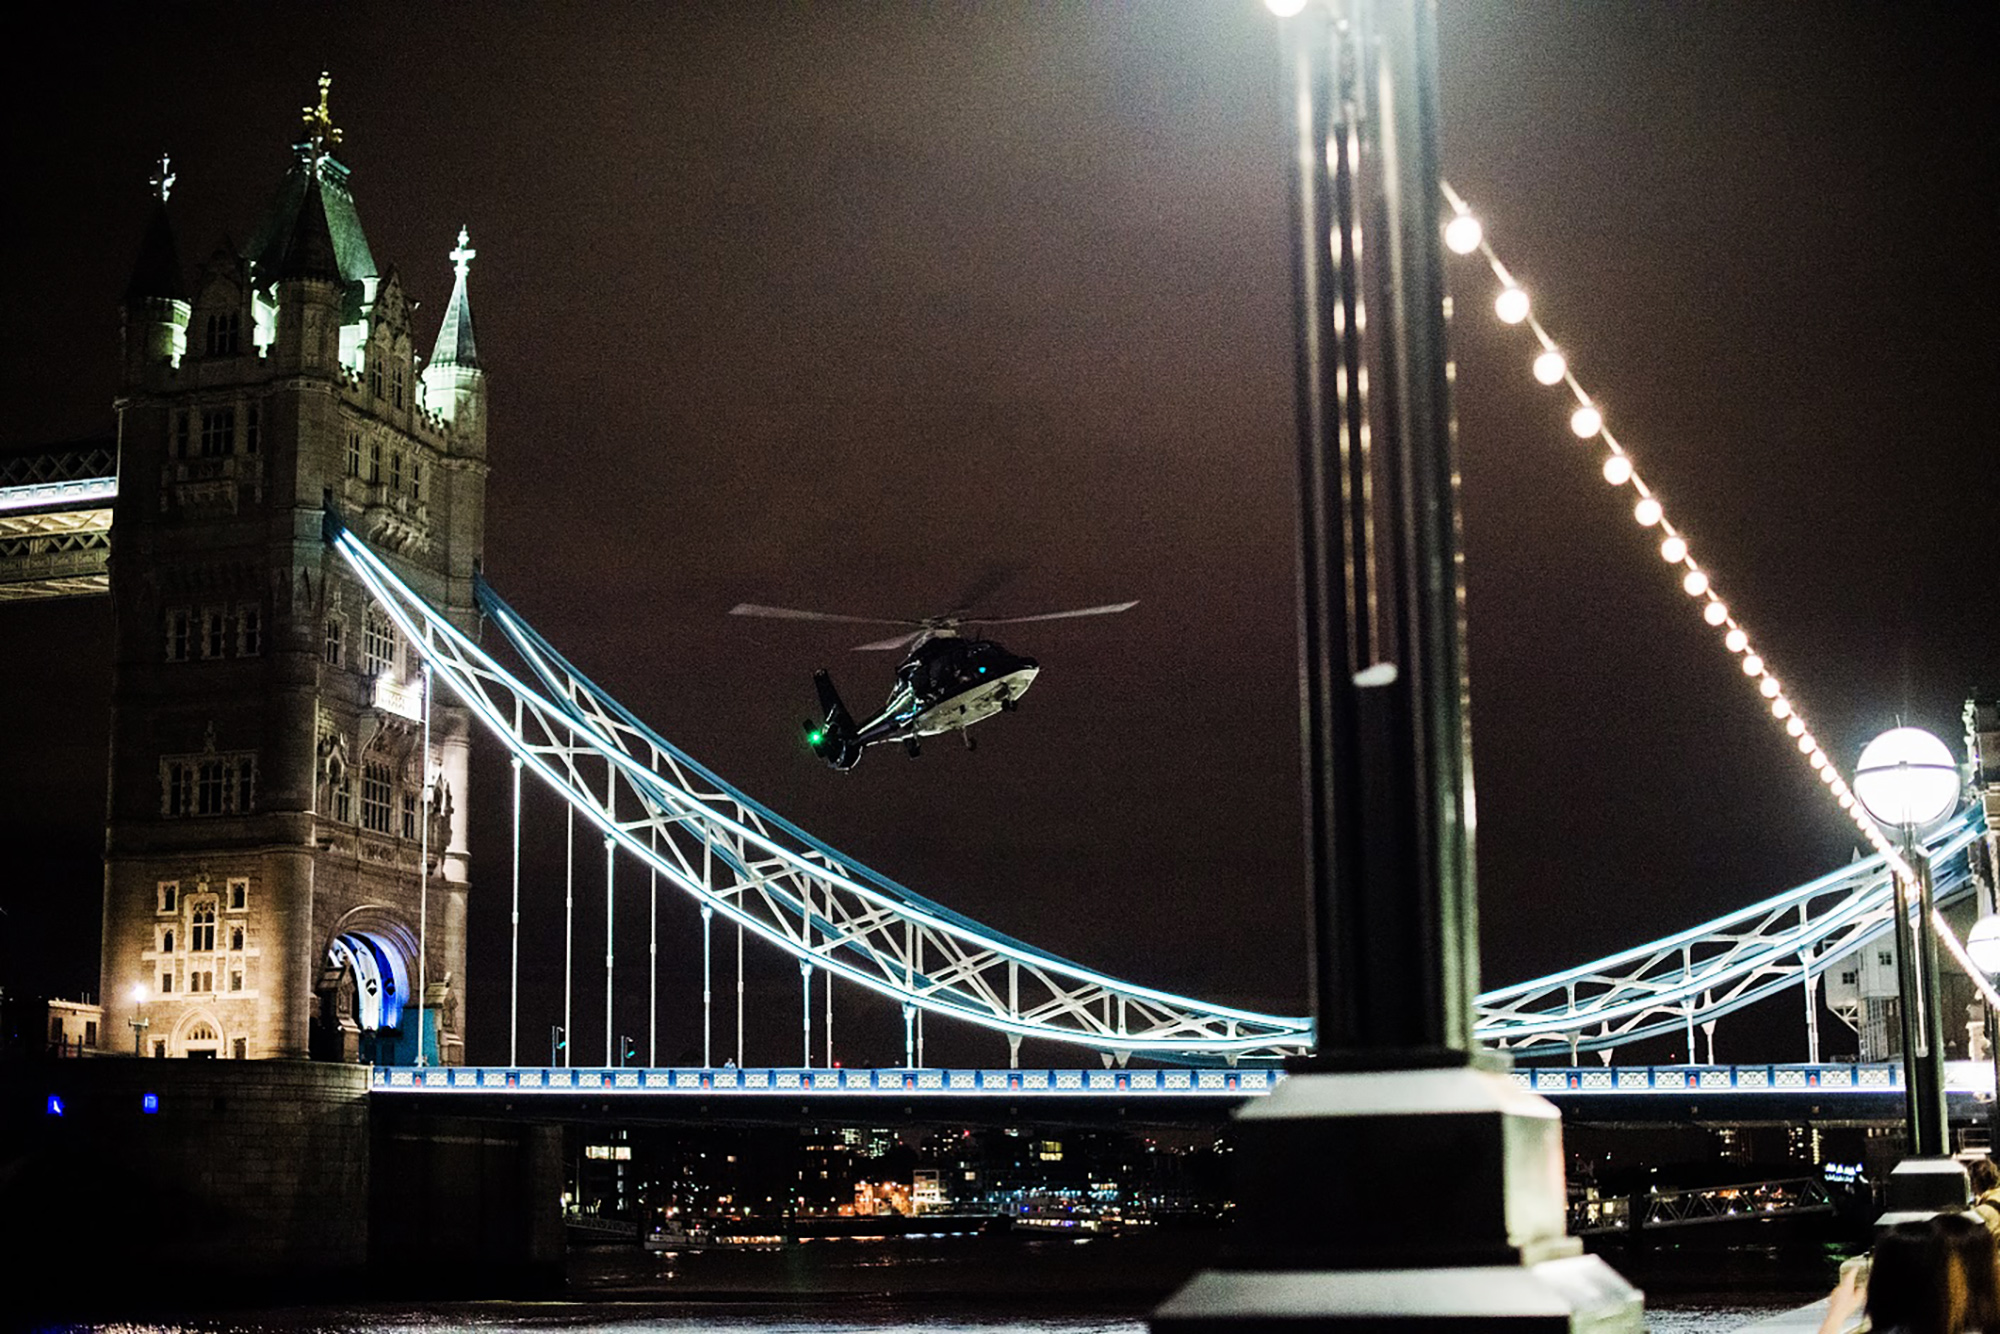 An emergency response helicopter lands on London Bridge, on June 03, 2017.